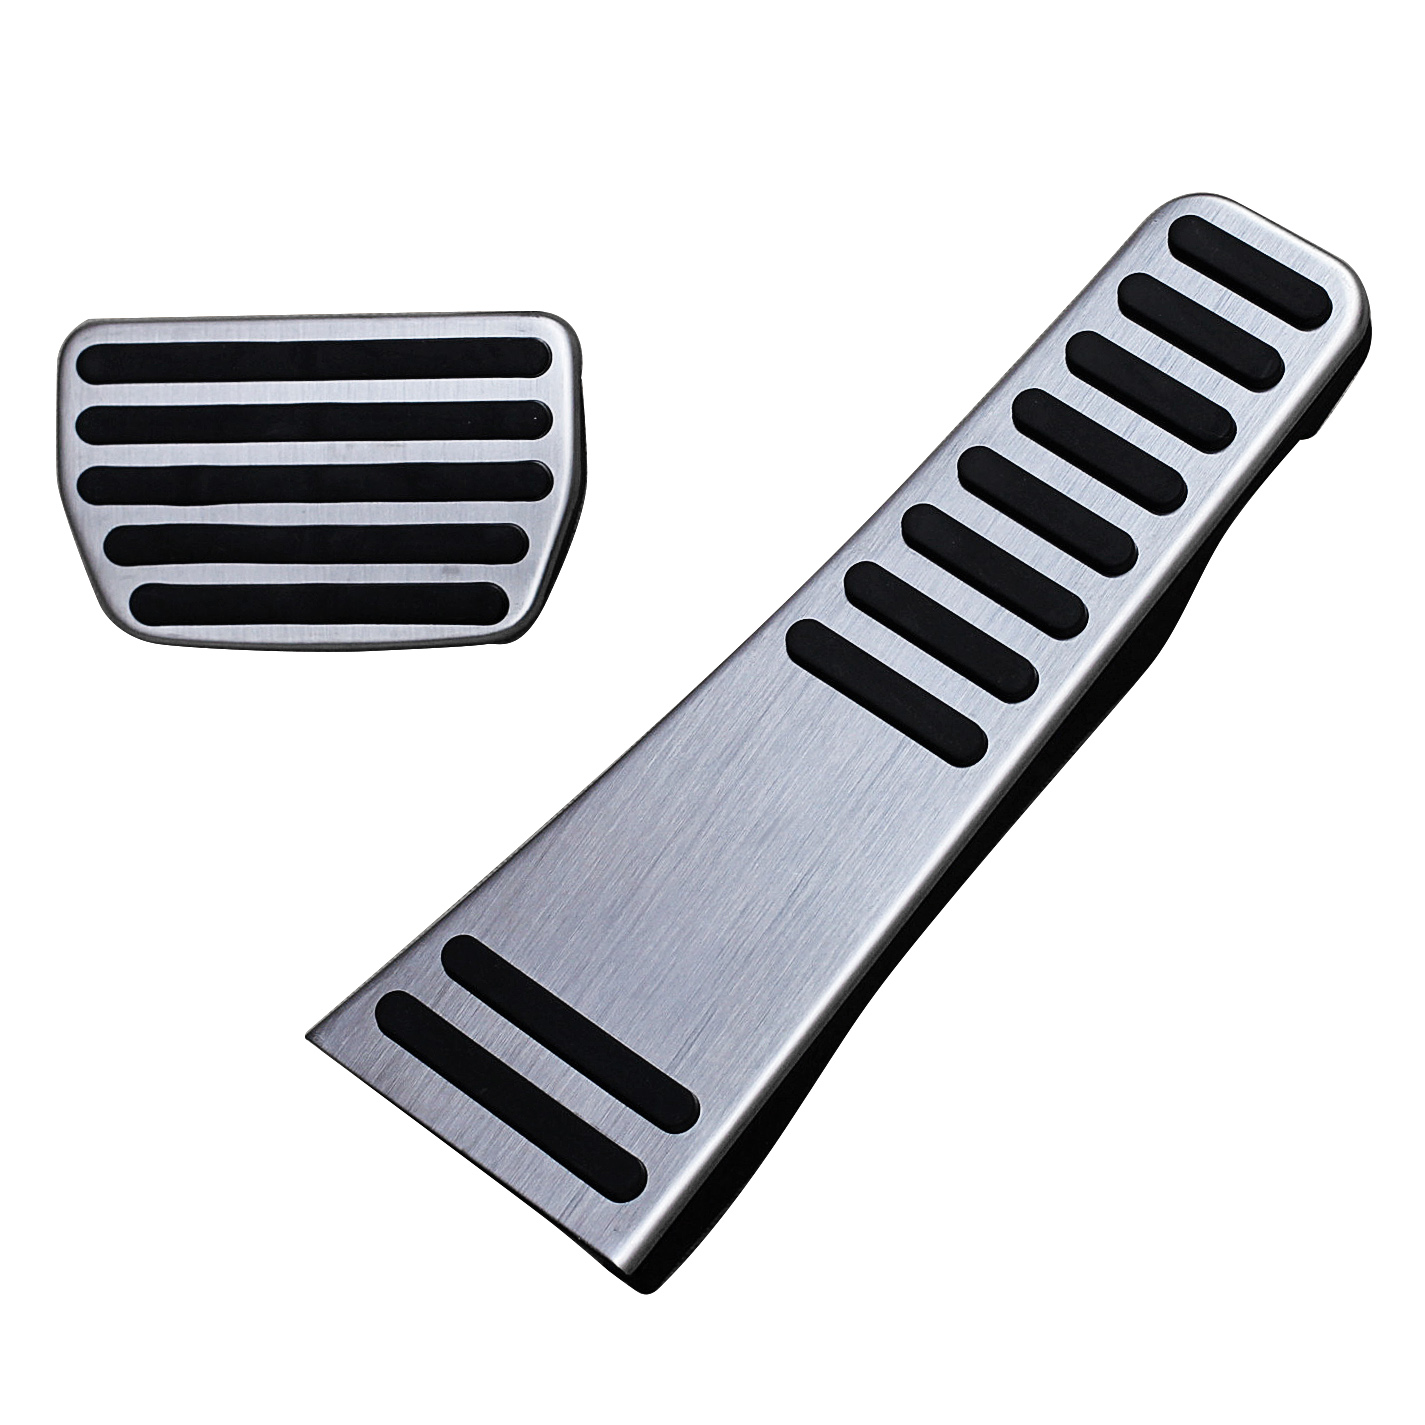 Steel Brake Gas Pedal Cover Set Accessories For <font><b>Volvo</b></font> S60 <font><b>XC60</b></font> V60 XC90 S90 V90 image